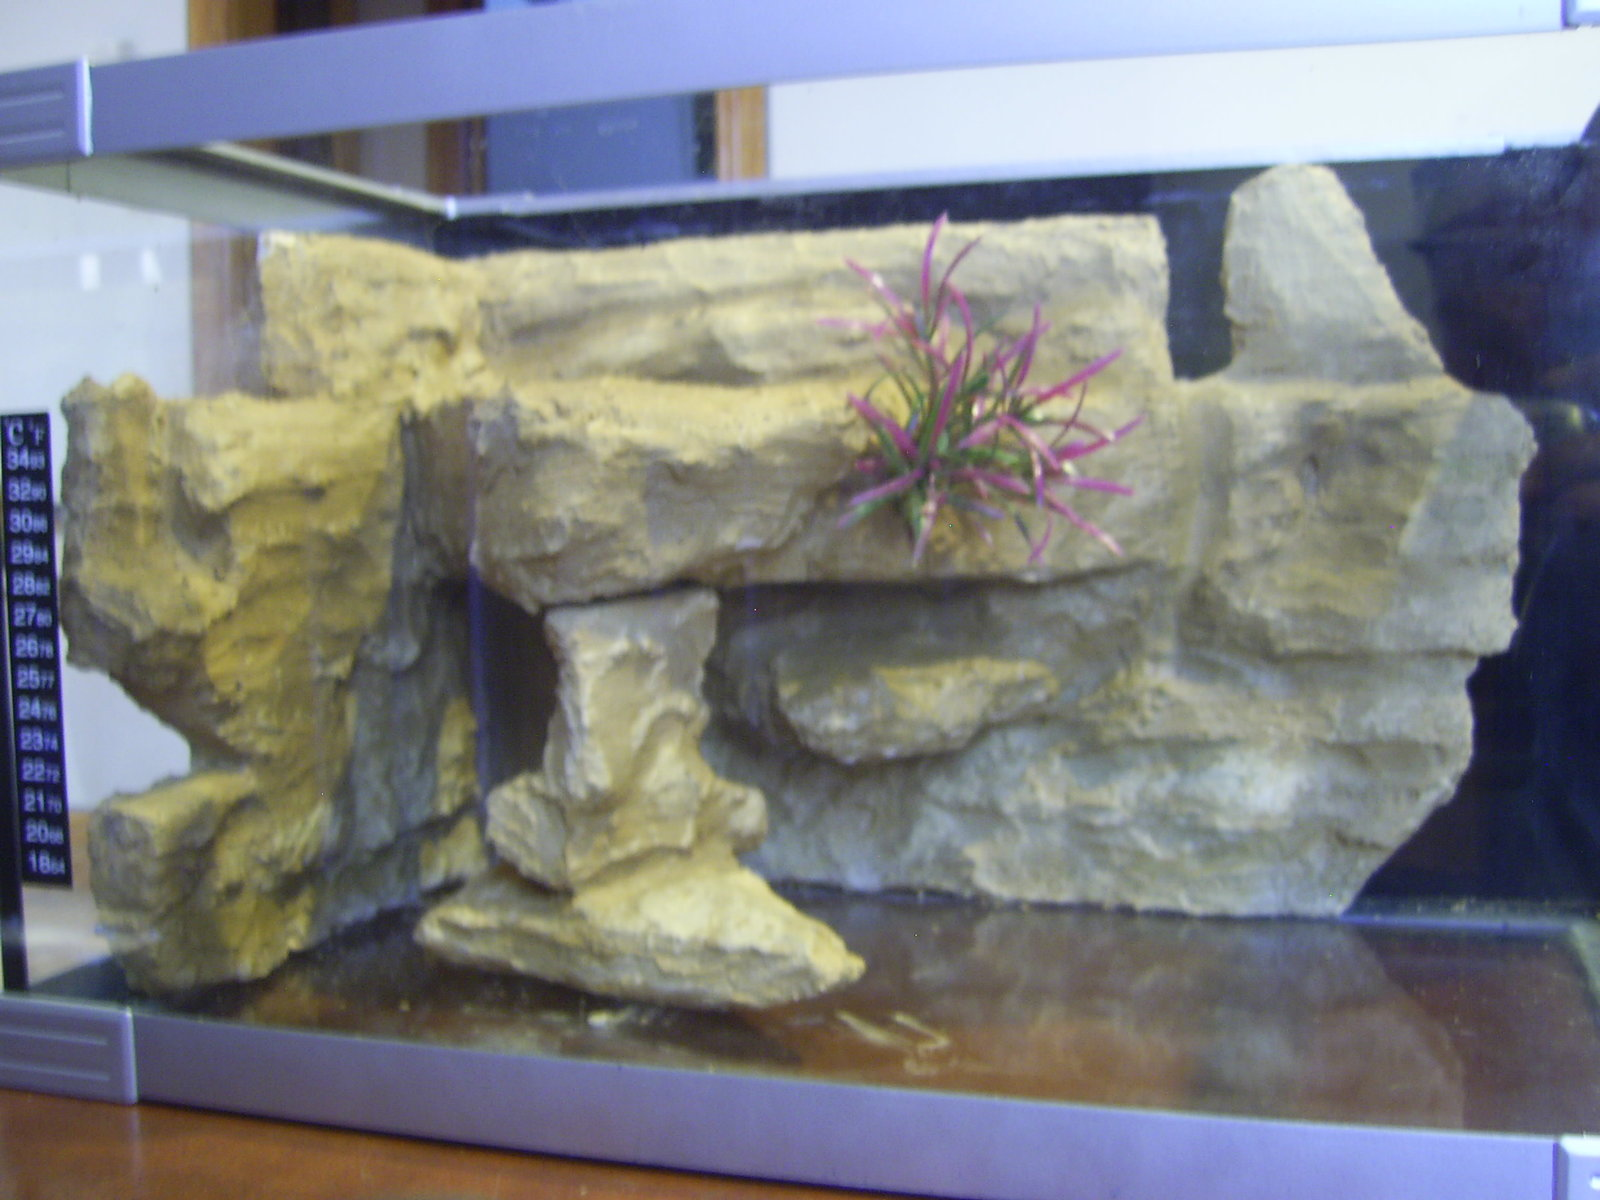 DIY aquarium background | by Grant Cassar